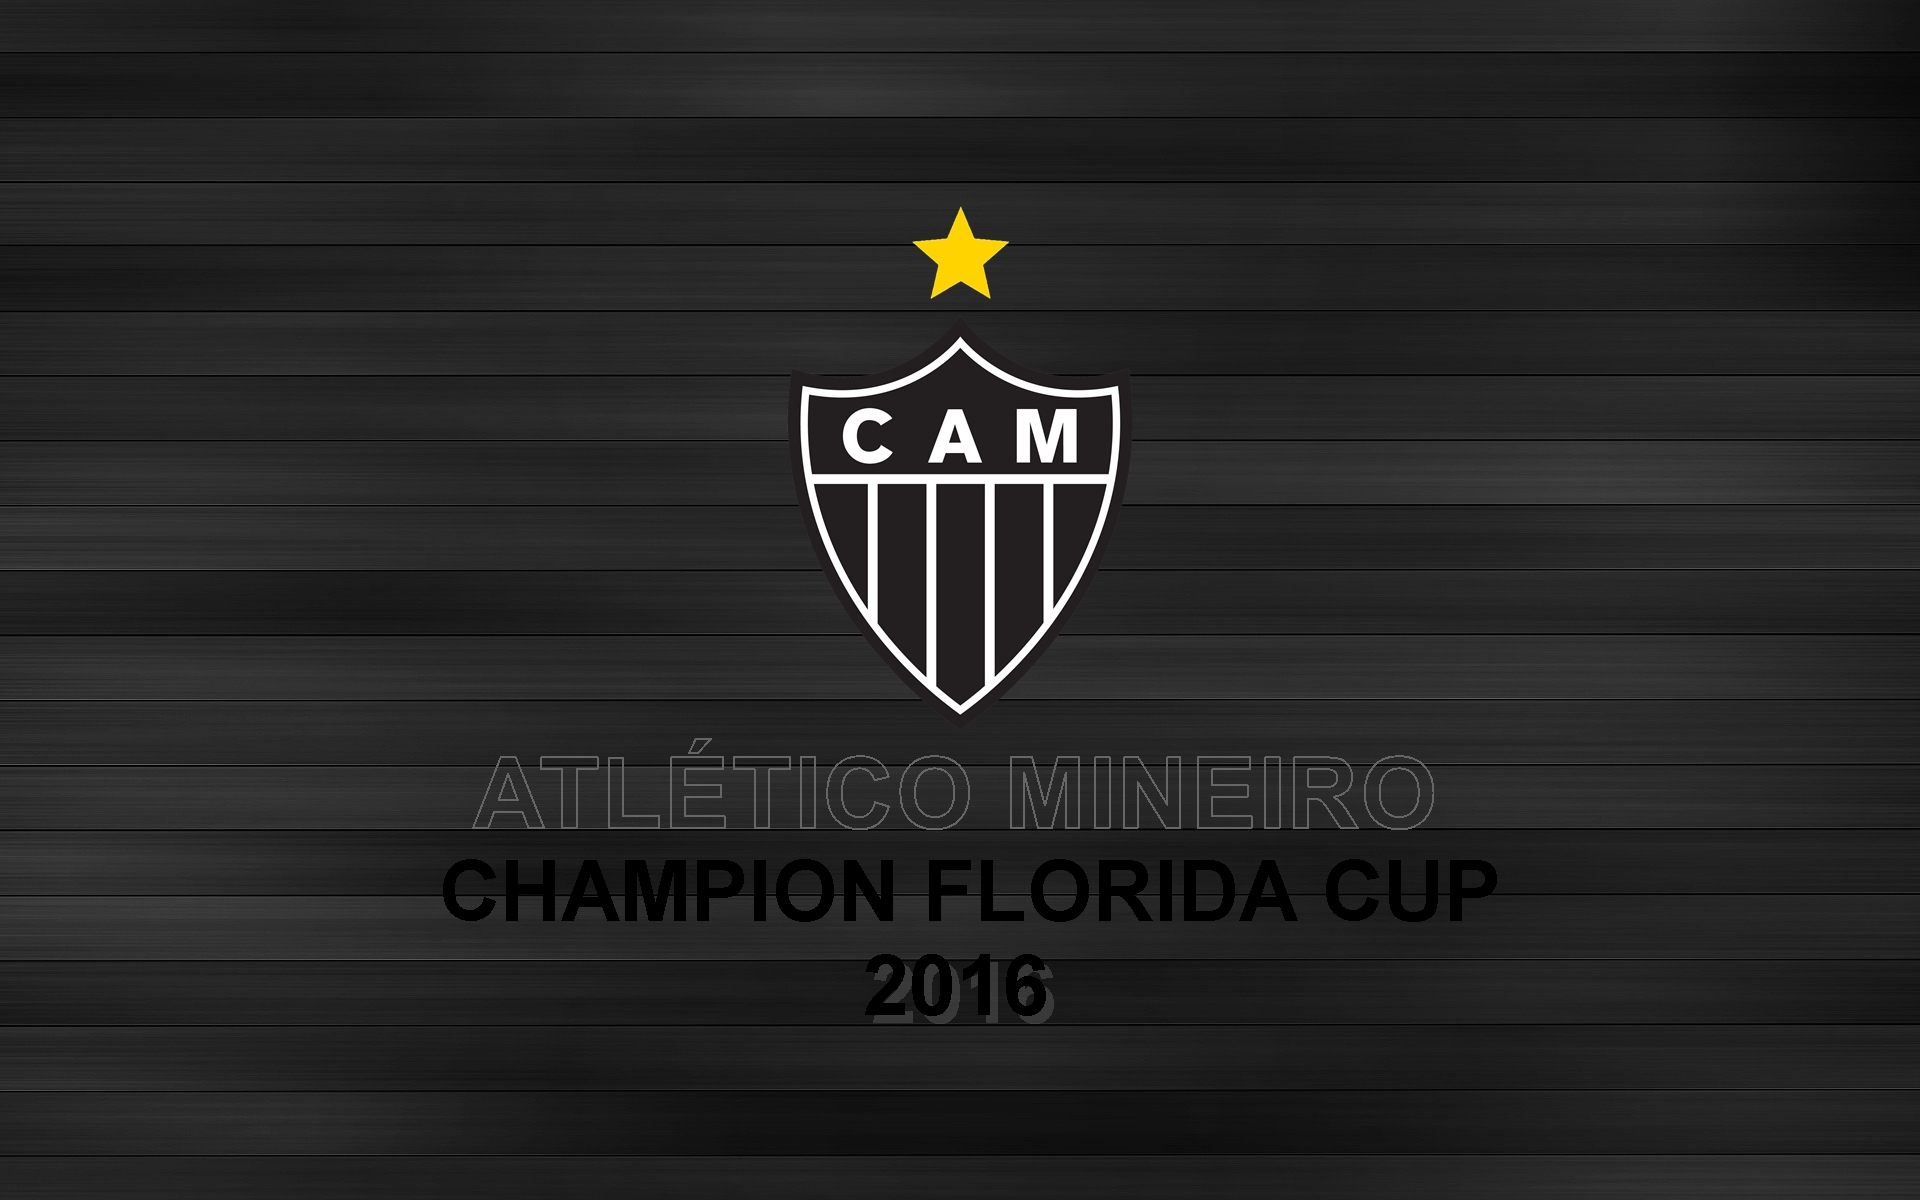 Wallpaper Baixe O Papel De Parede Do Galo Campeao Do Florida Cup 2016 Por Dentro De Minas O Portal De Noticias De Minas Gerais